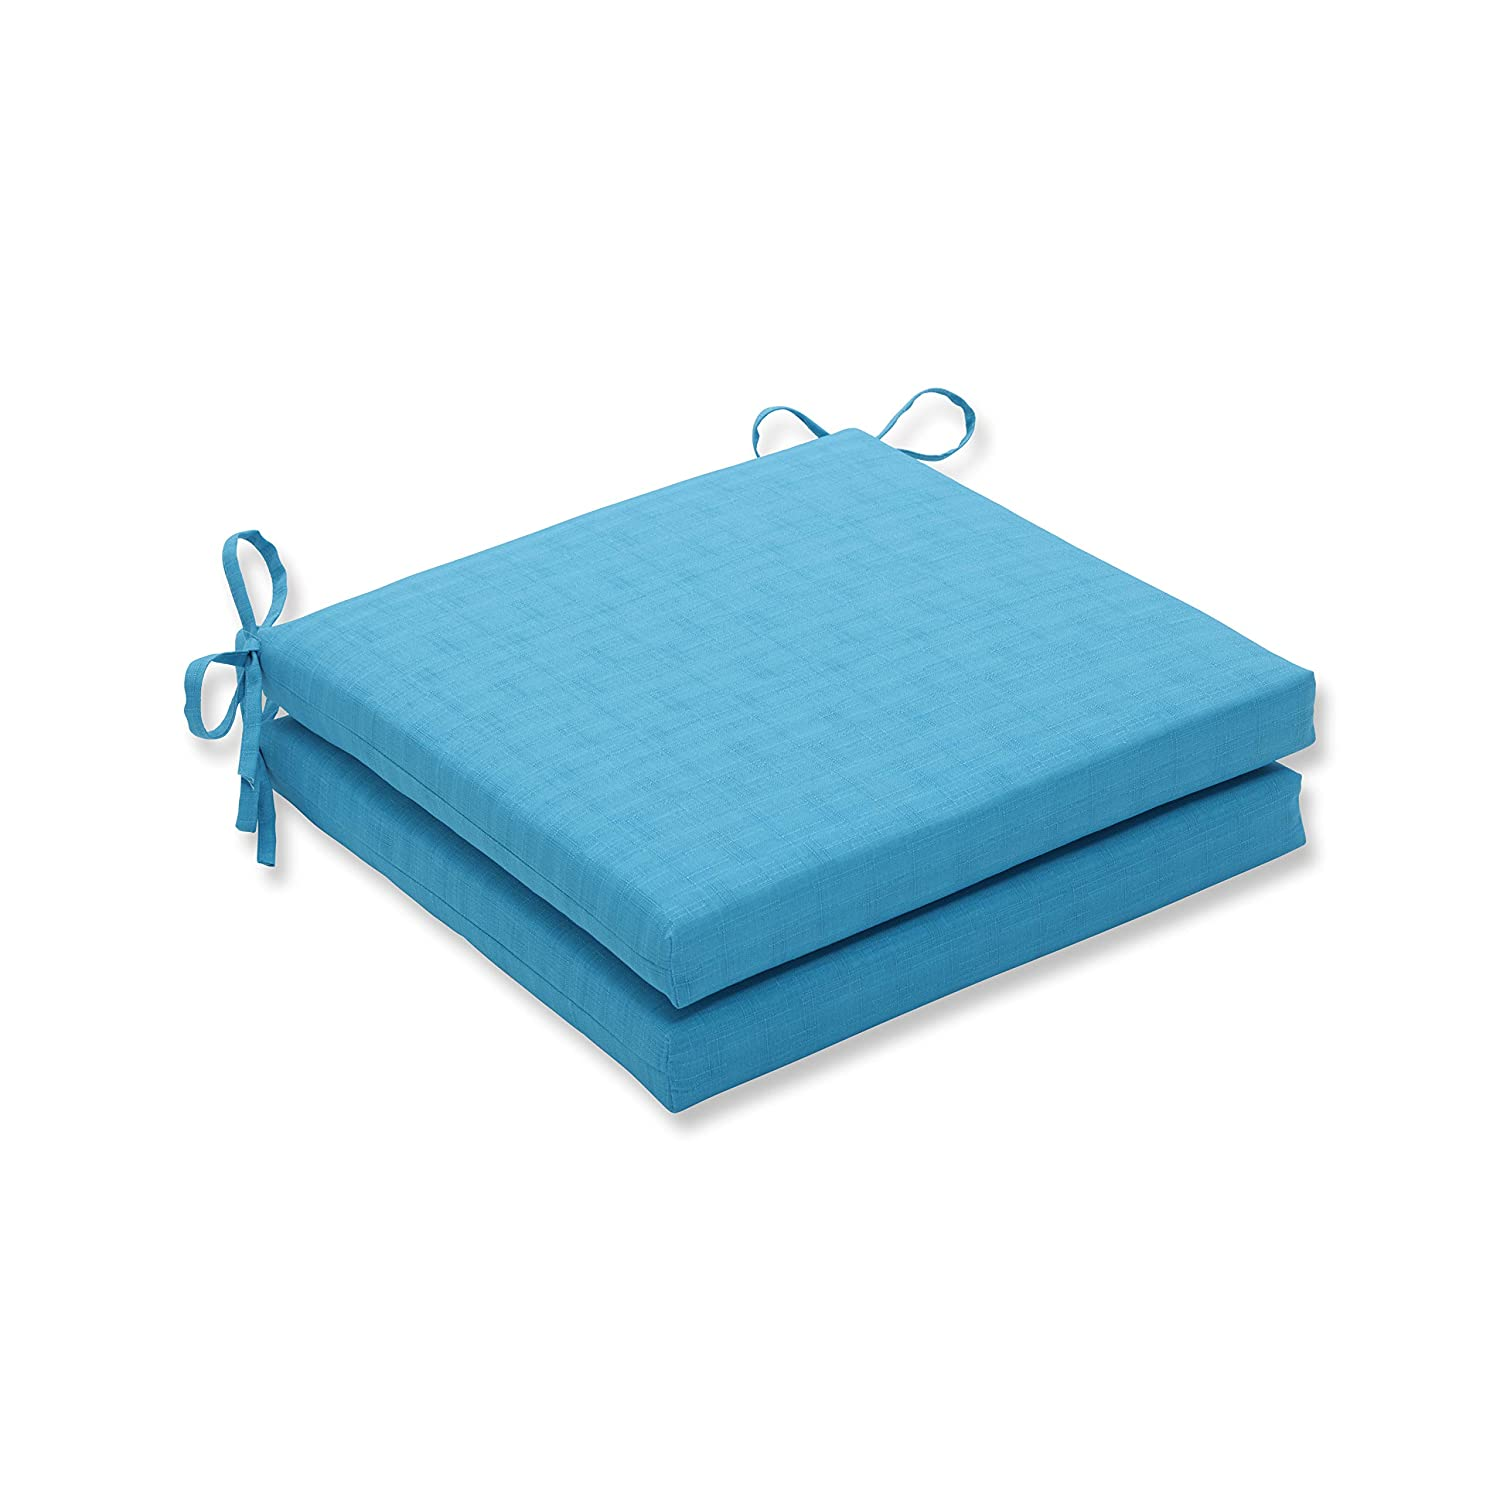 Pillow Perfect Outdoor Indoor Veranda Turquoise Squared Corners Seat Cushion 20x20x3 Set of 2